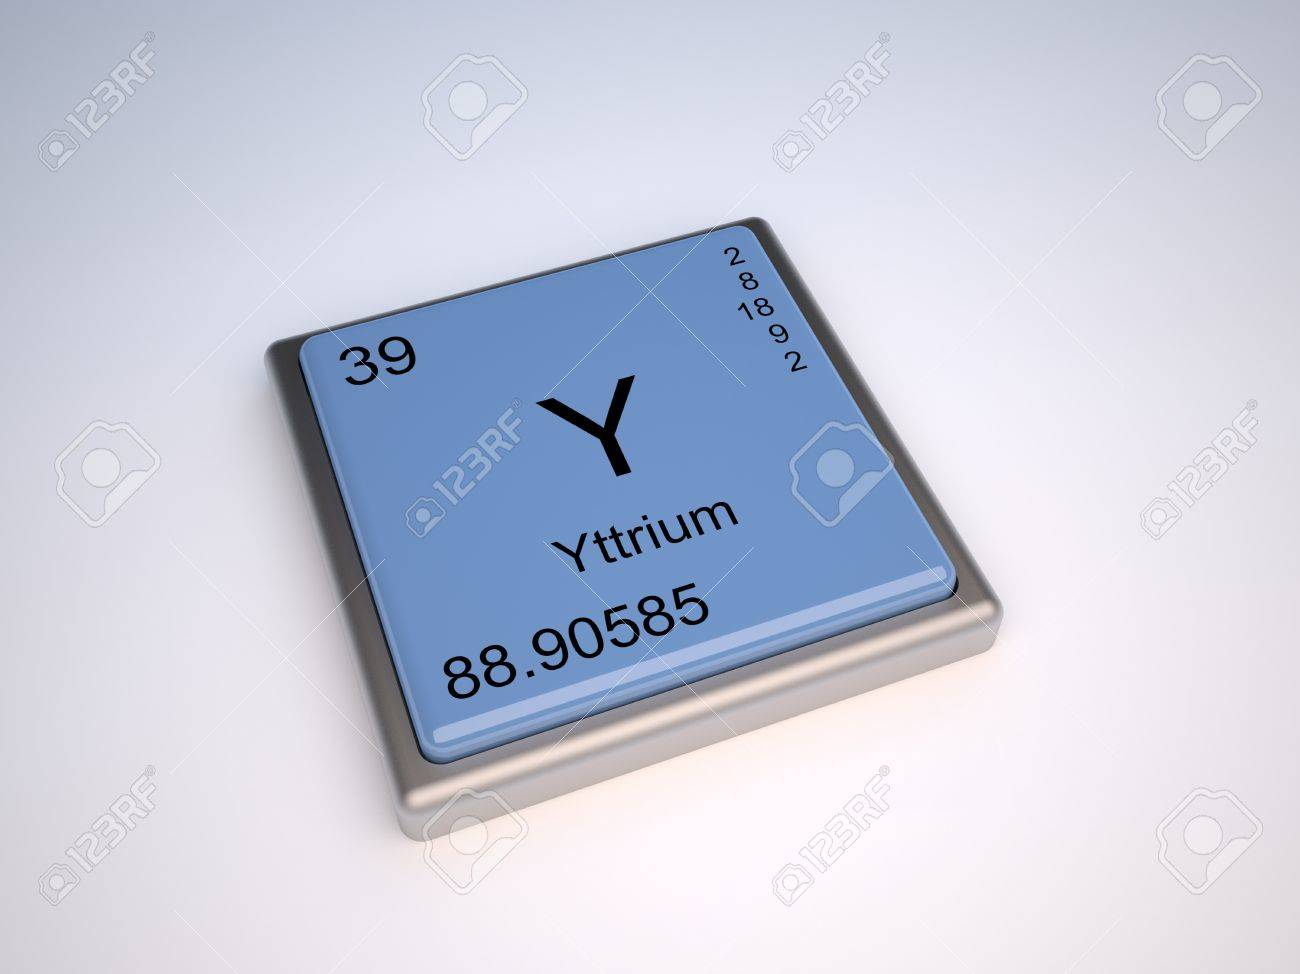 Periodic table element y image collections periodic table images y in the periodic table projector vector what is a timeline chart yttrium chemical element of gamestrikefo Choice Image